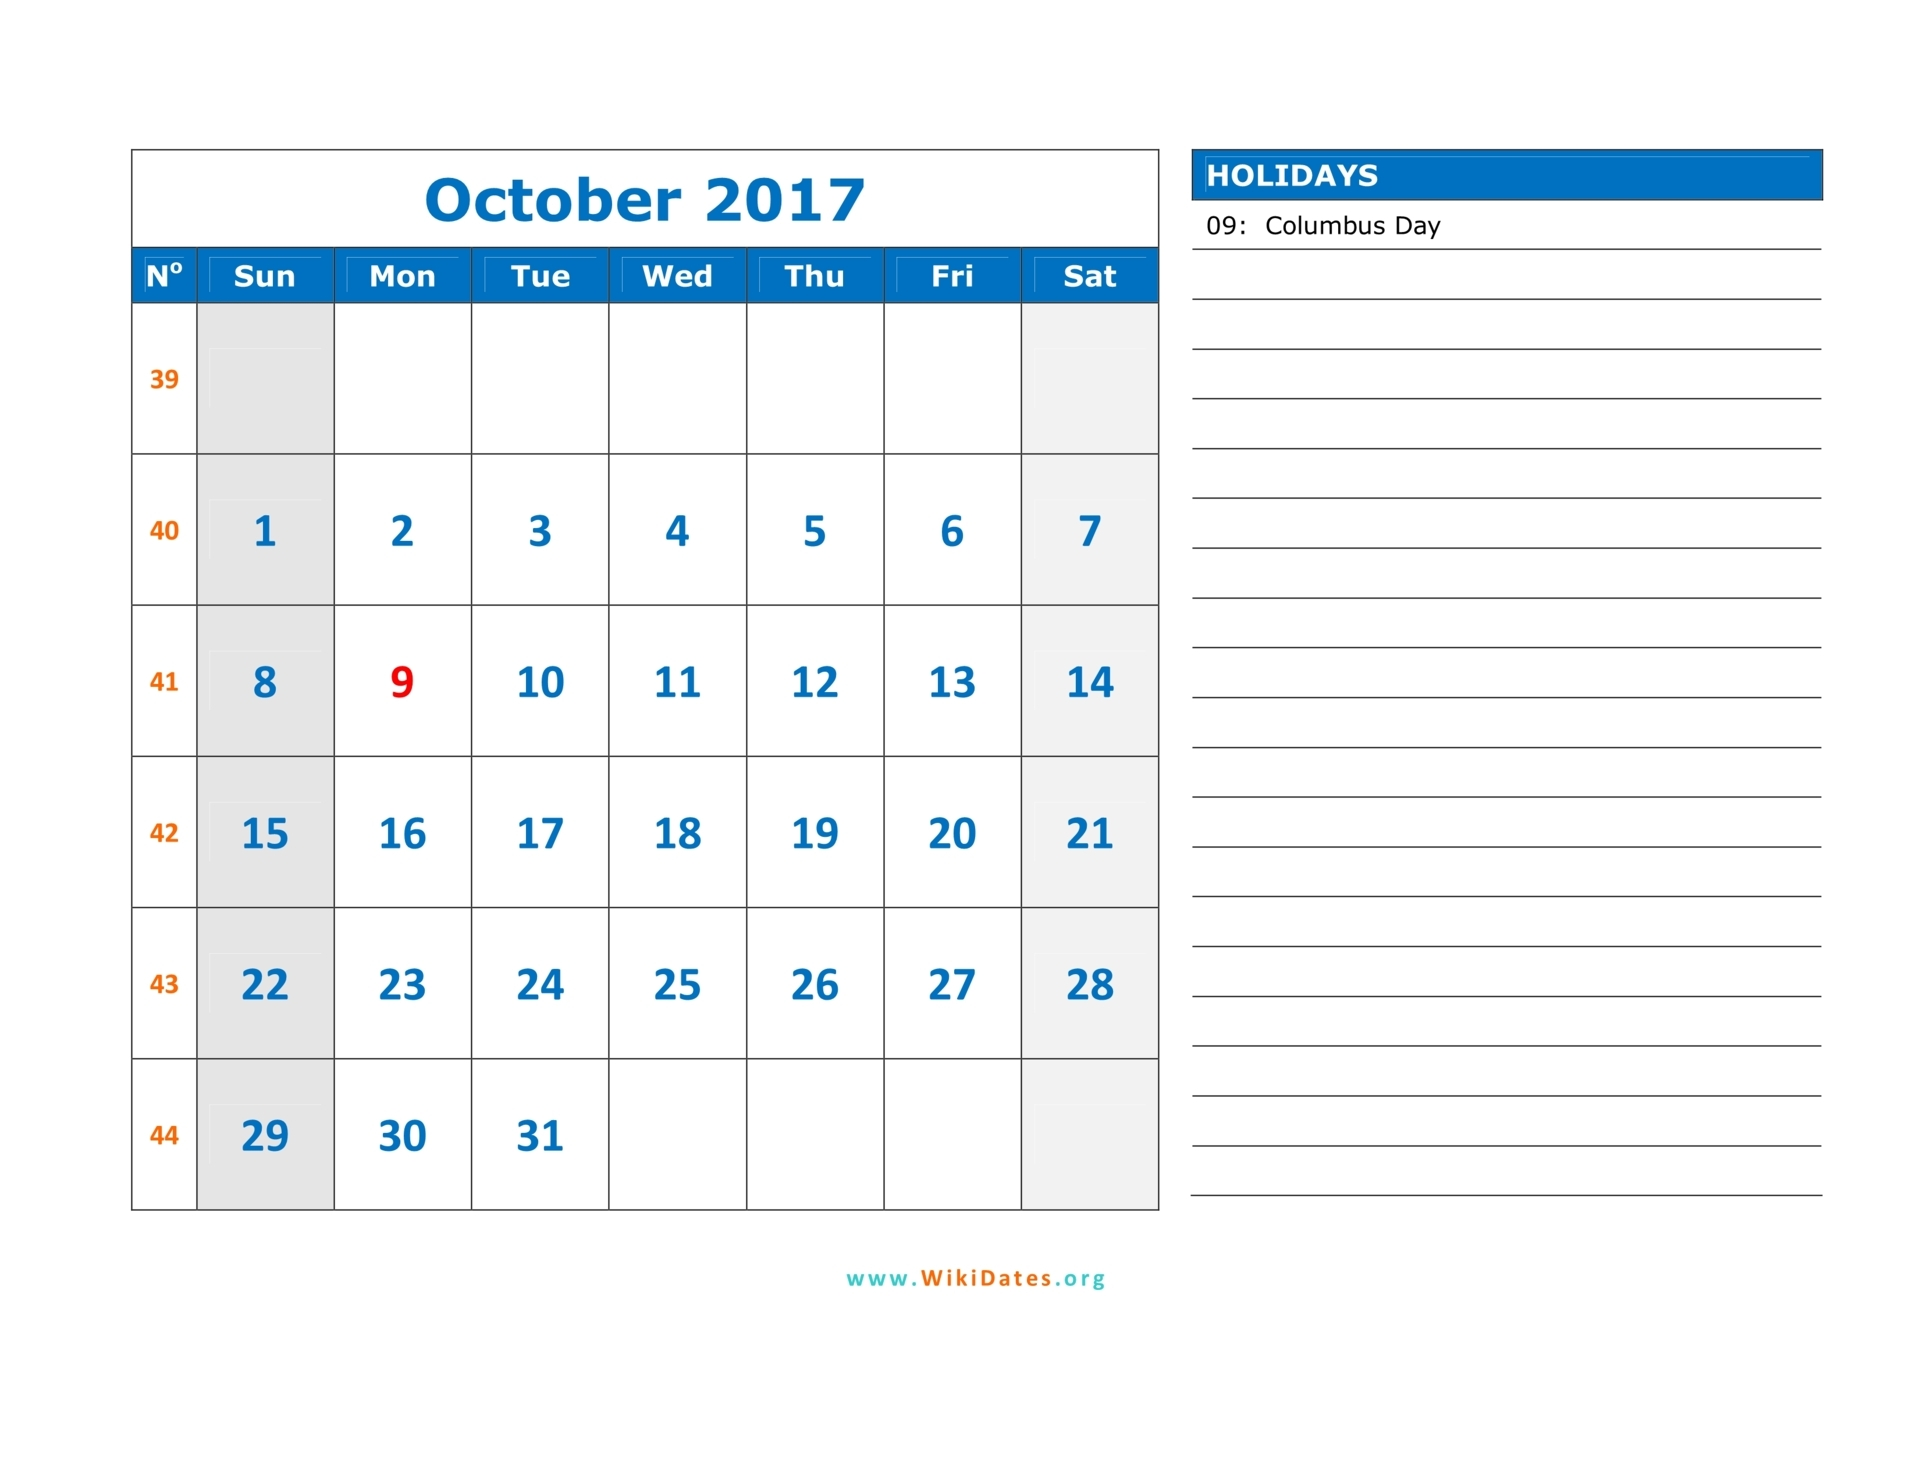 October 2017 Calendar | WikiDates.org